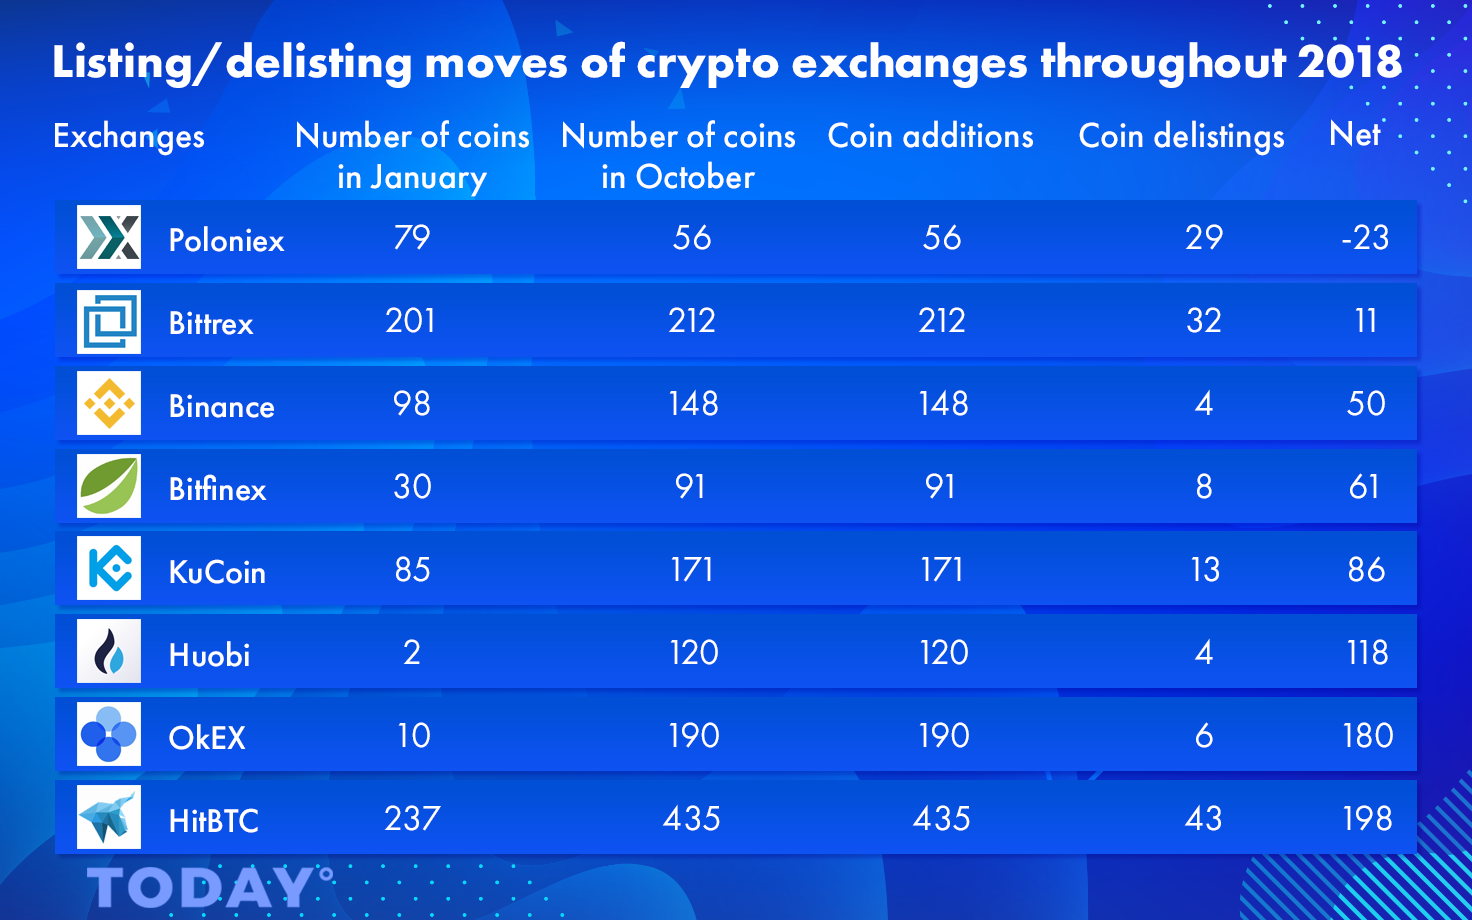 Listing-delisting-moves-of-crypto-exchanges-throughout-2018